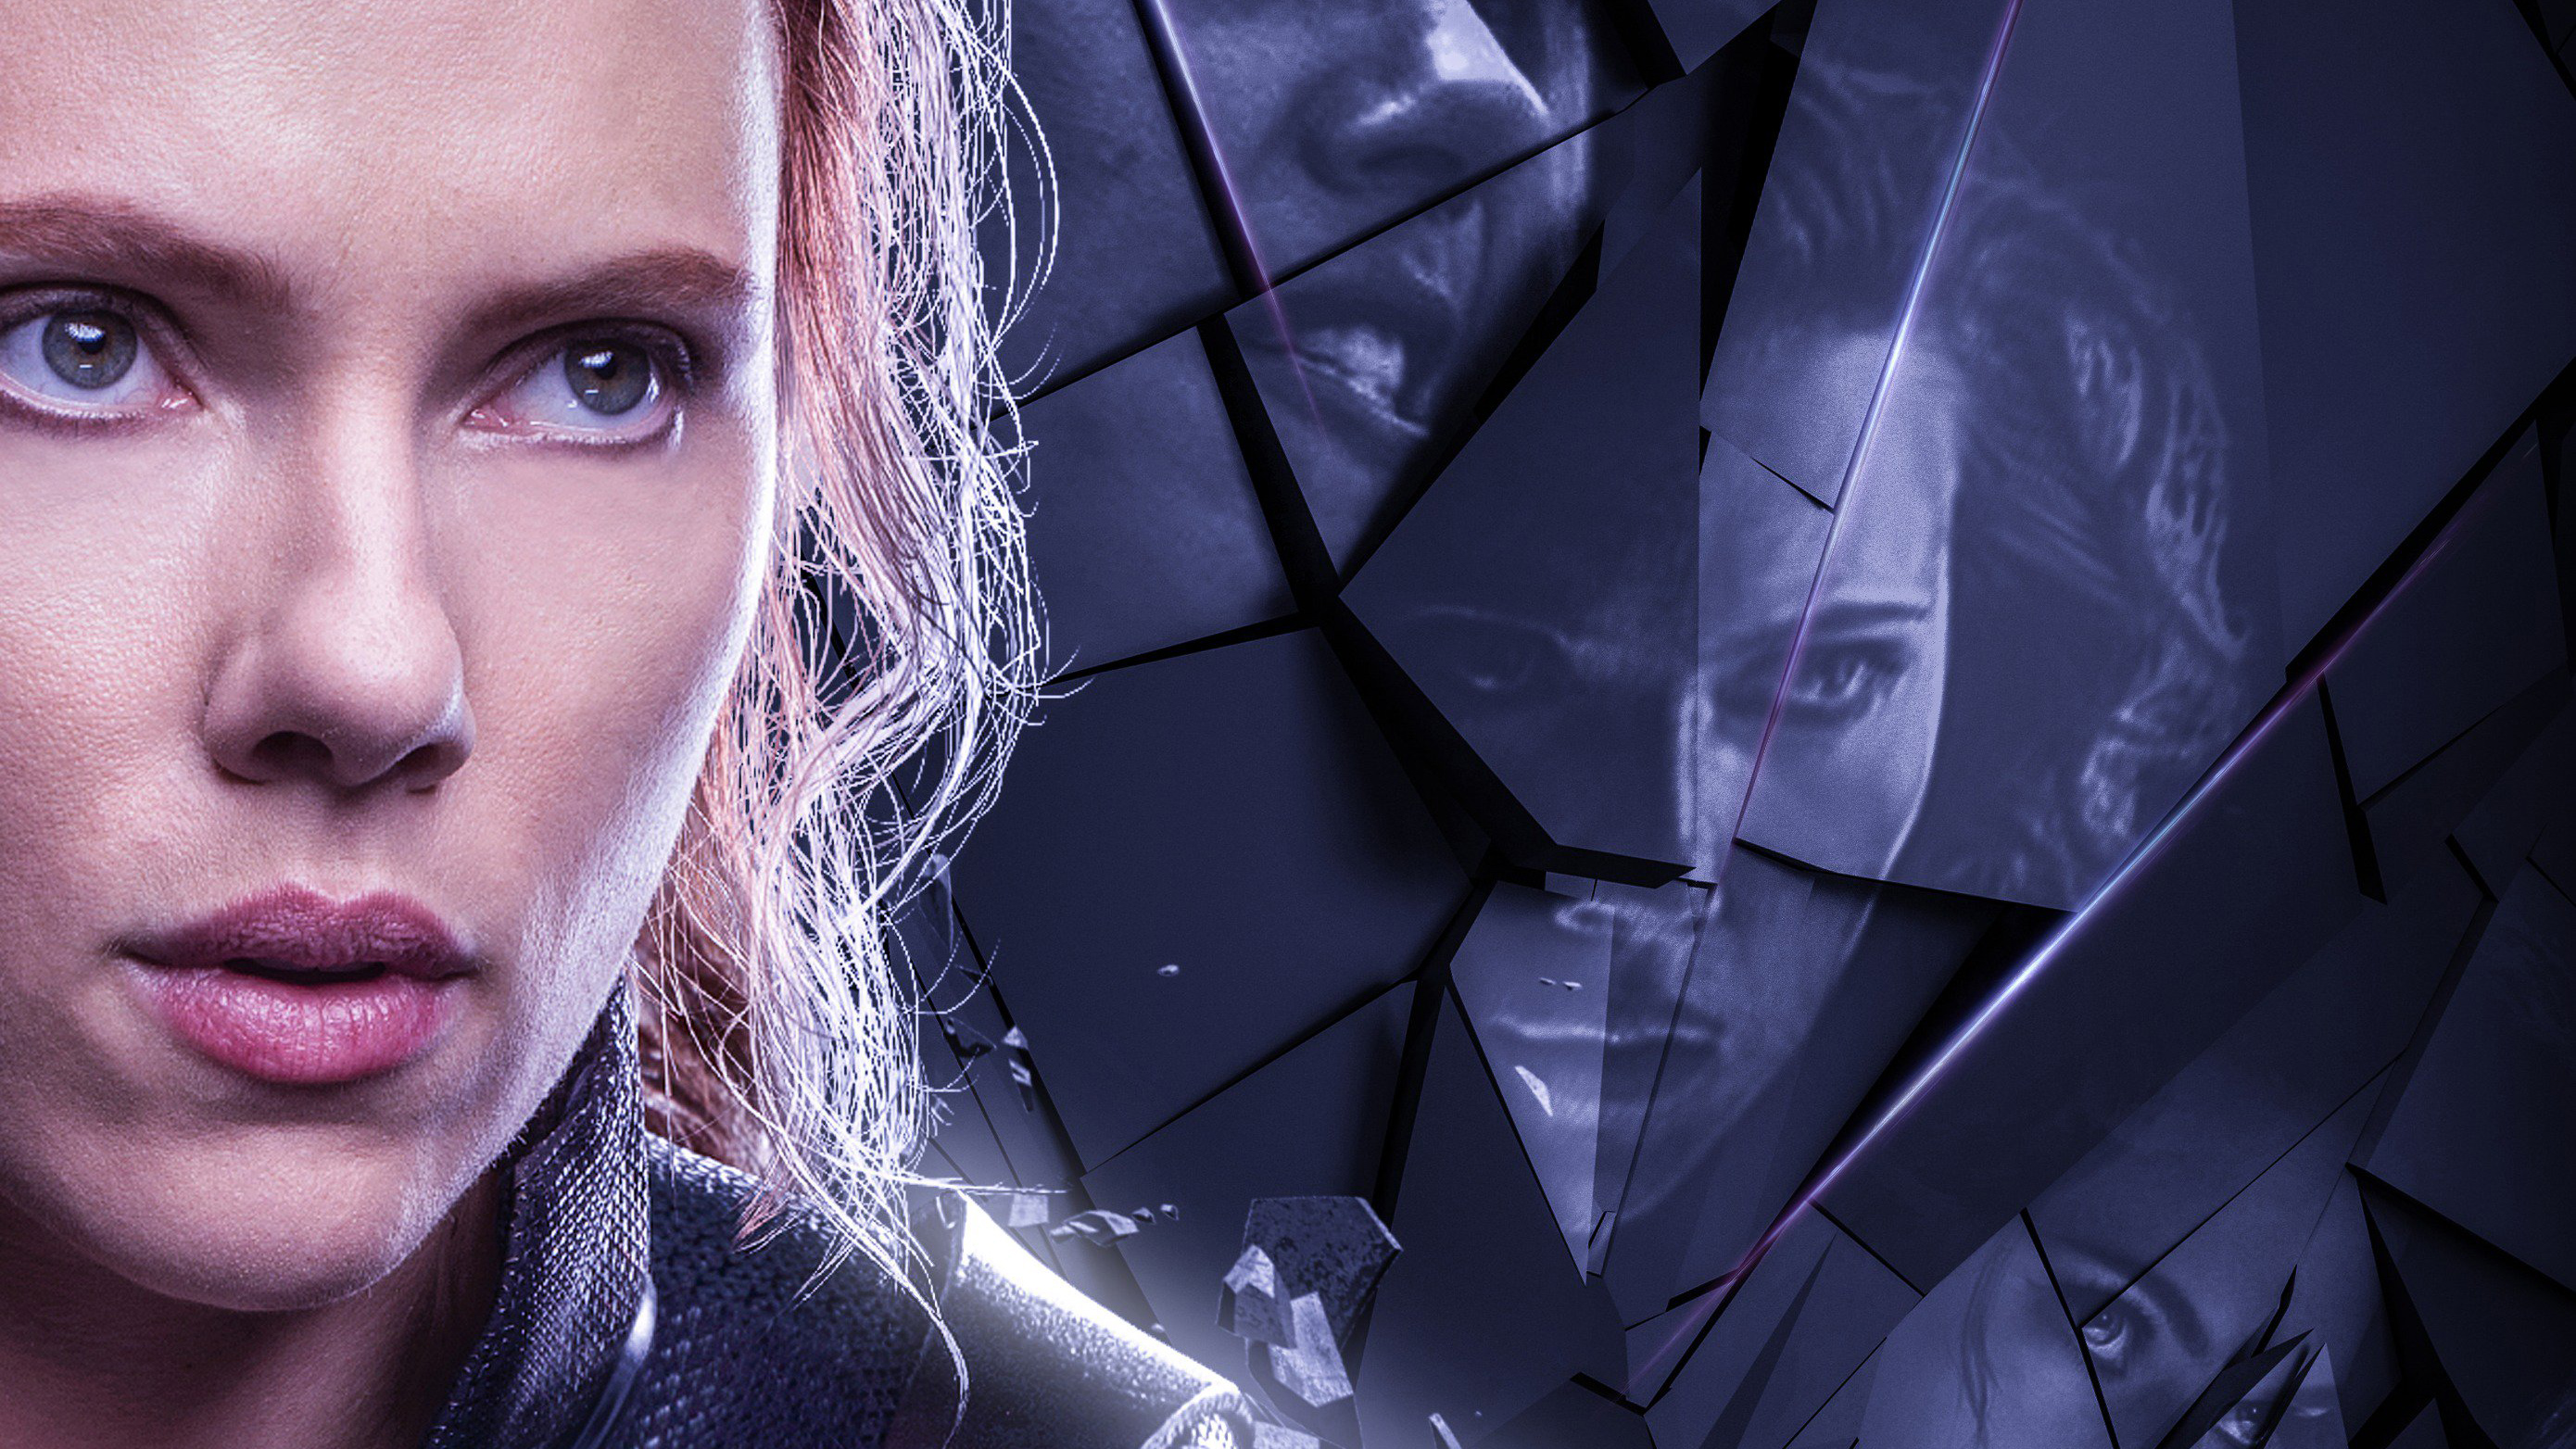 Movie Poster 2019: Black Widow In Avengers Endgame 2019 Poster, HD Movies, 4k